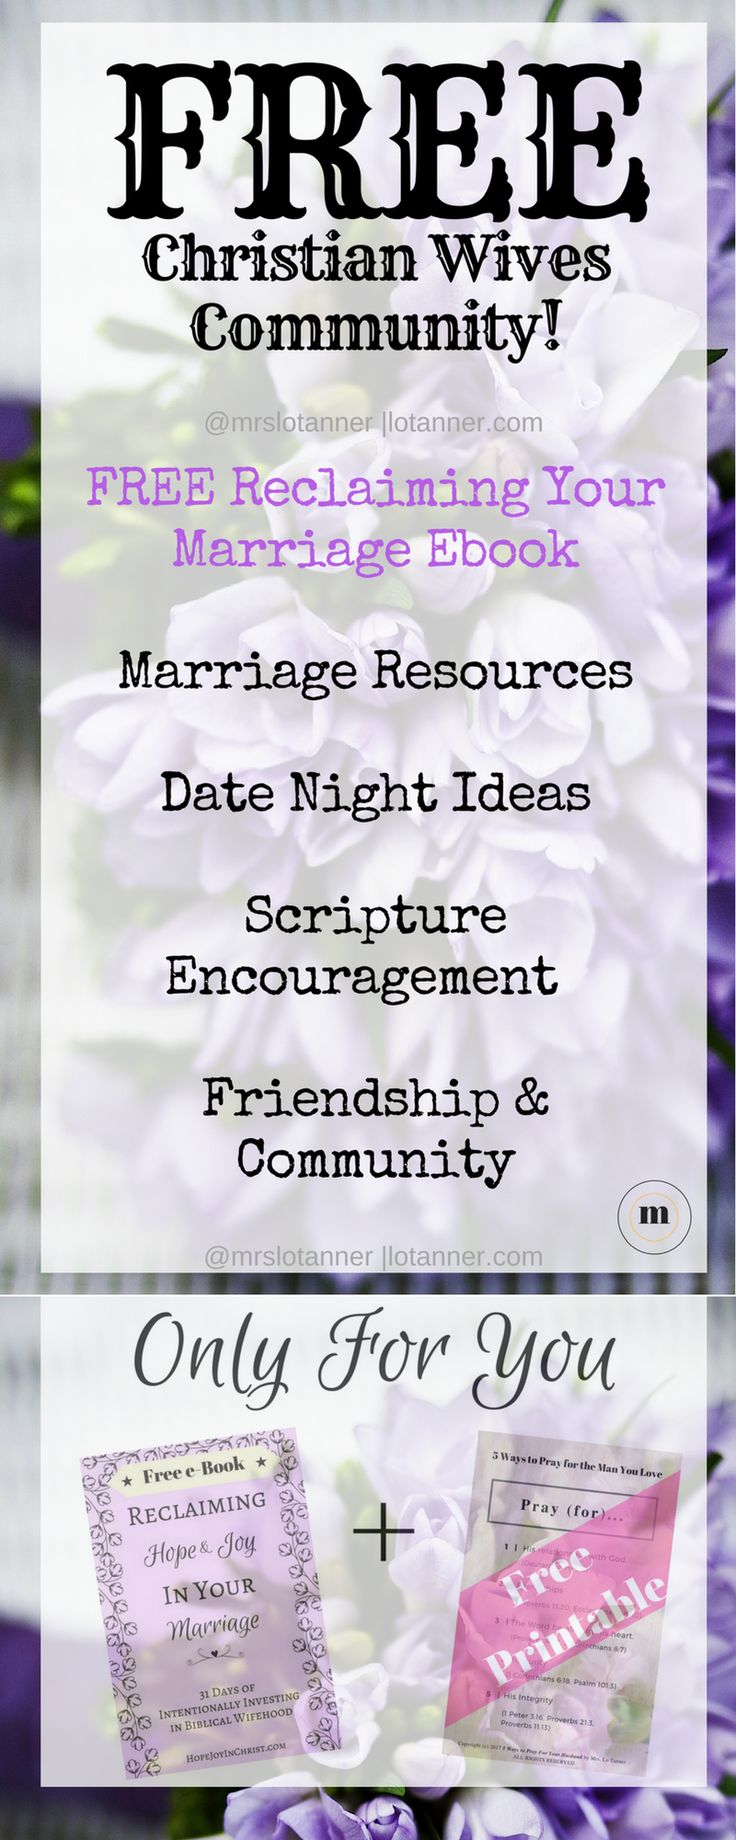 """A Community for Christian Wives. Get your FREE ebook """"Reclaiming Hope & Joy In Your Marriage"""" and Free Printable """"5 Ways to Pray for the Man You Love"""" when you join the Wives Loving Well Community. http://www.lotanner.com/wives-loving-well @mrslotanner"""